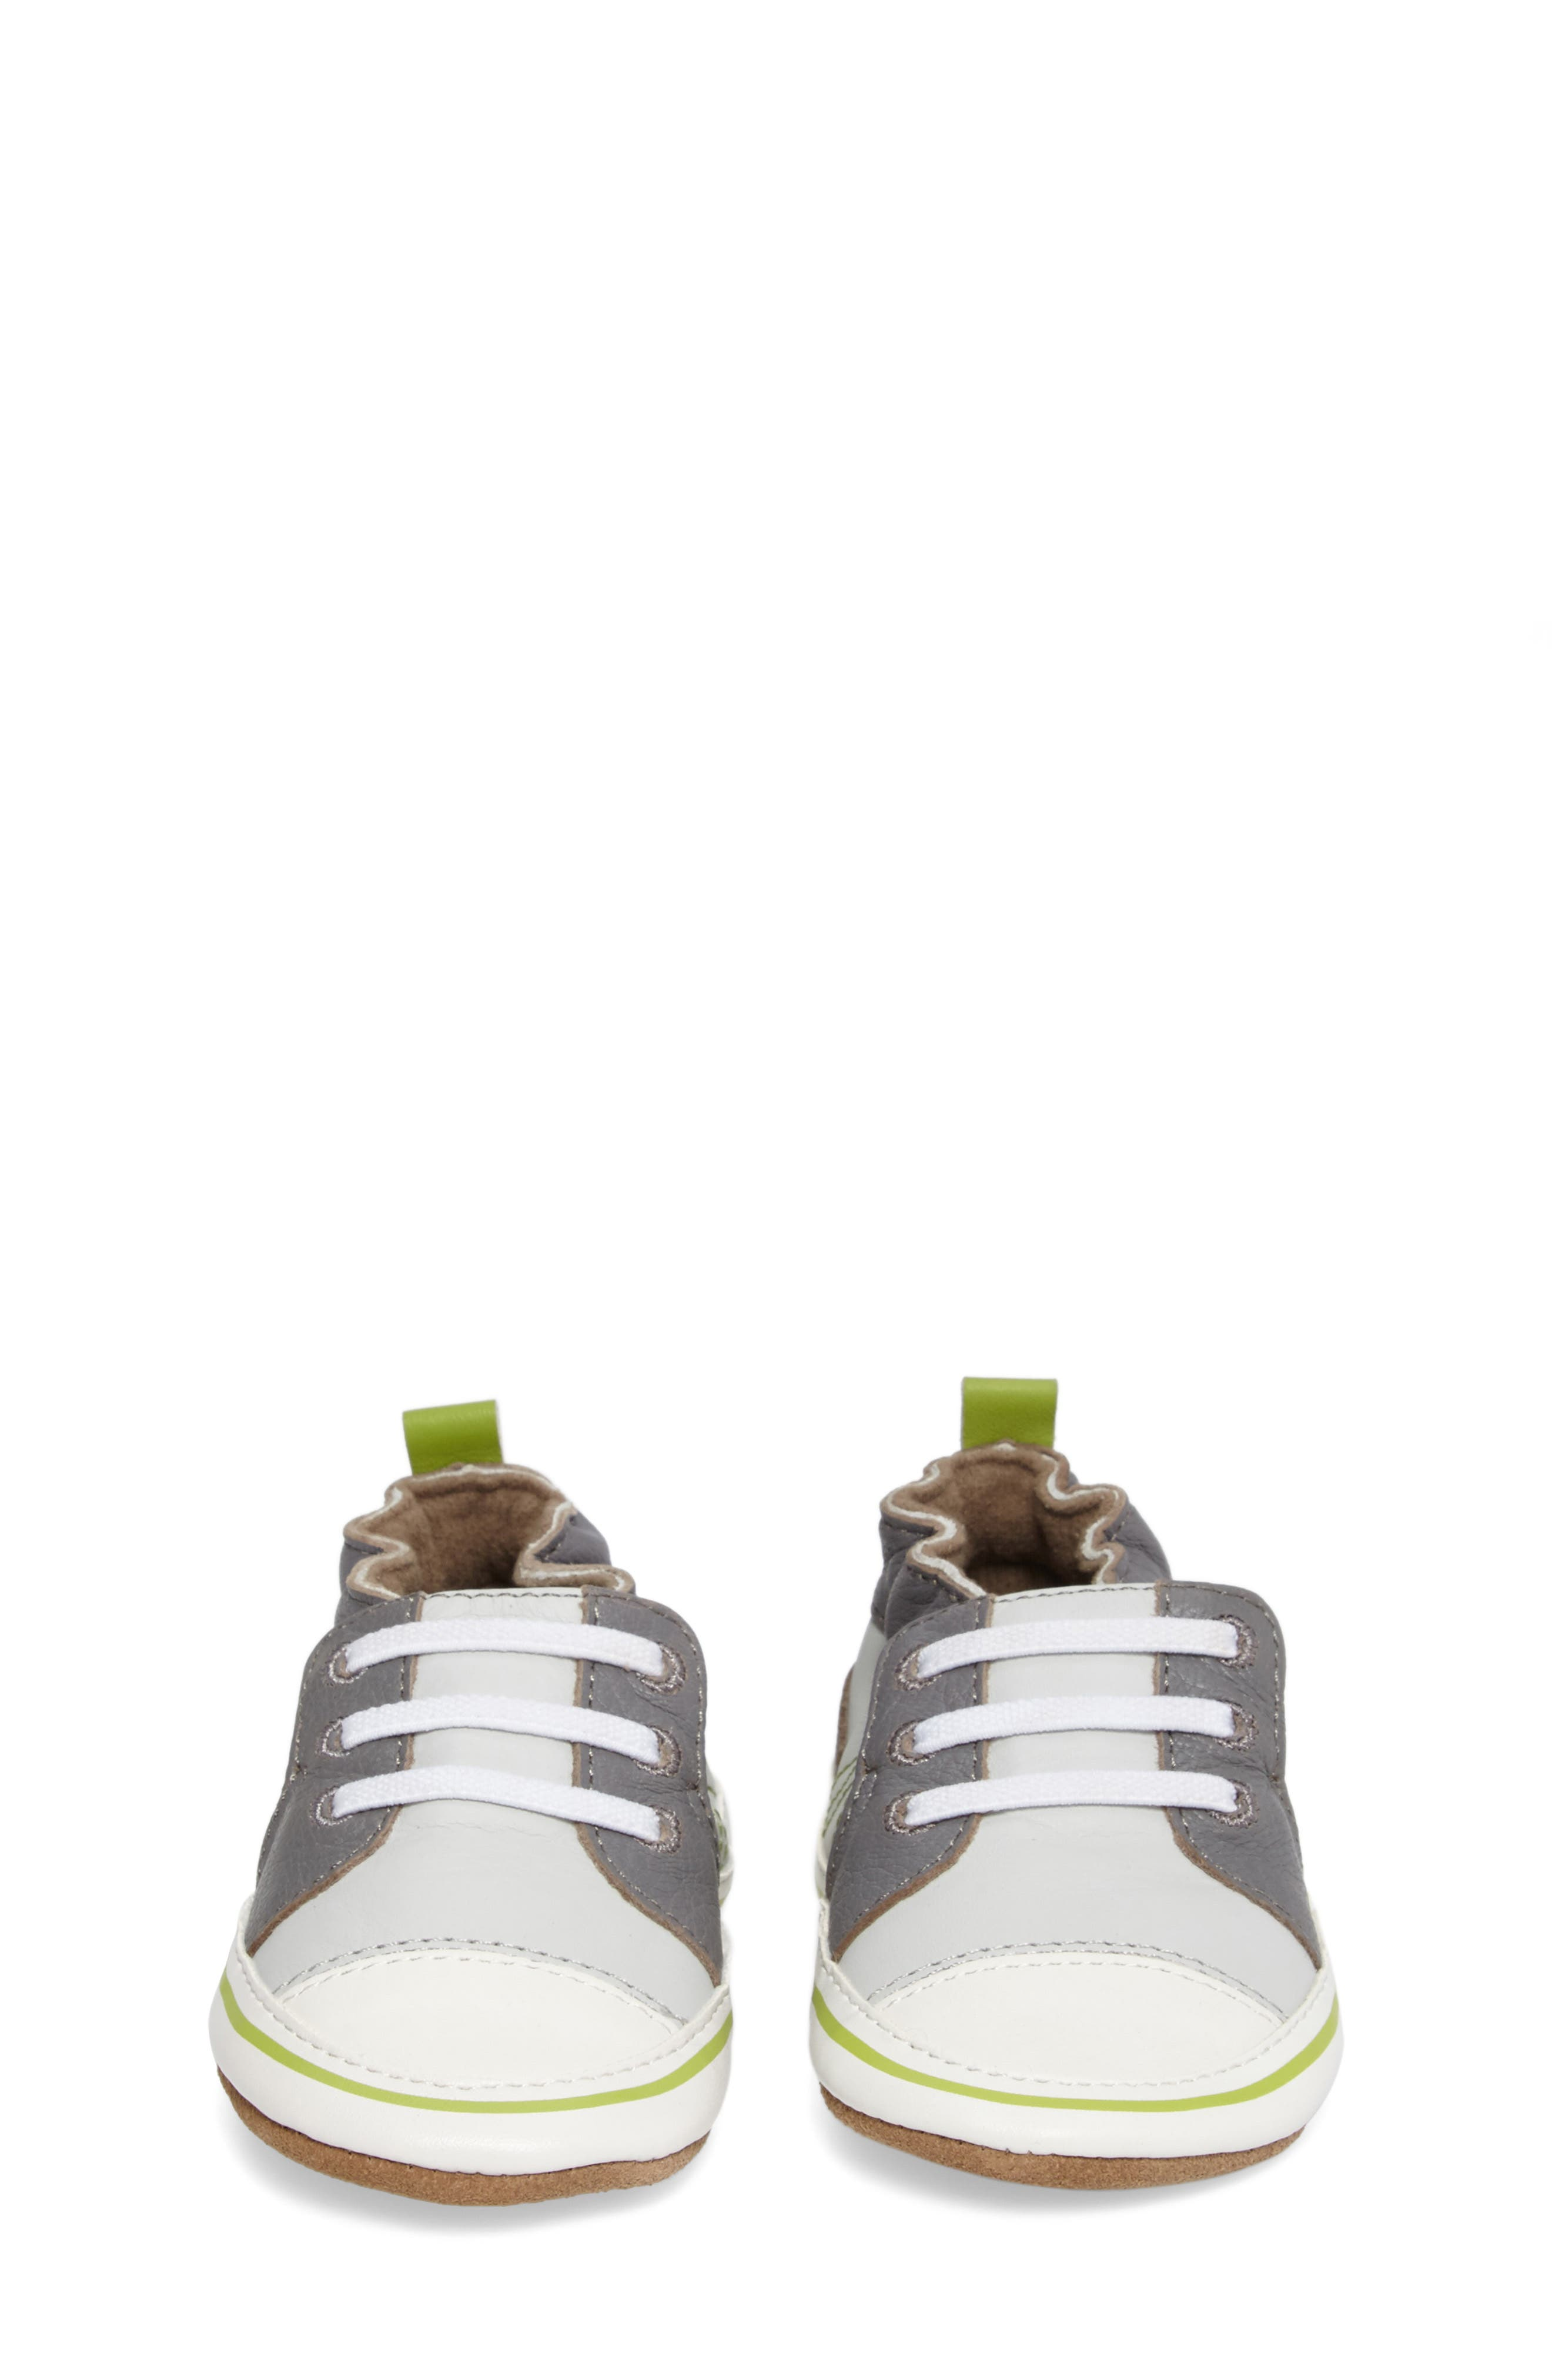 Trendy Trainer Sneaker Crib Shoe,                             Alternate thumbnail 4, color,                             Grey Leather